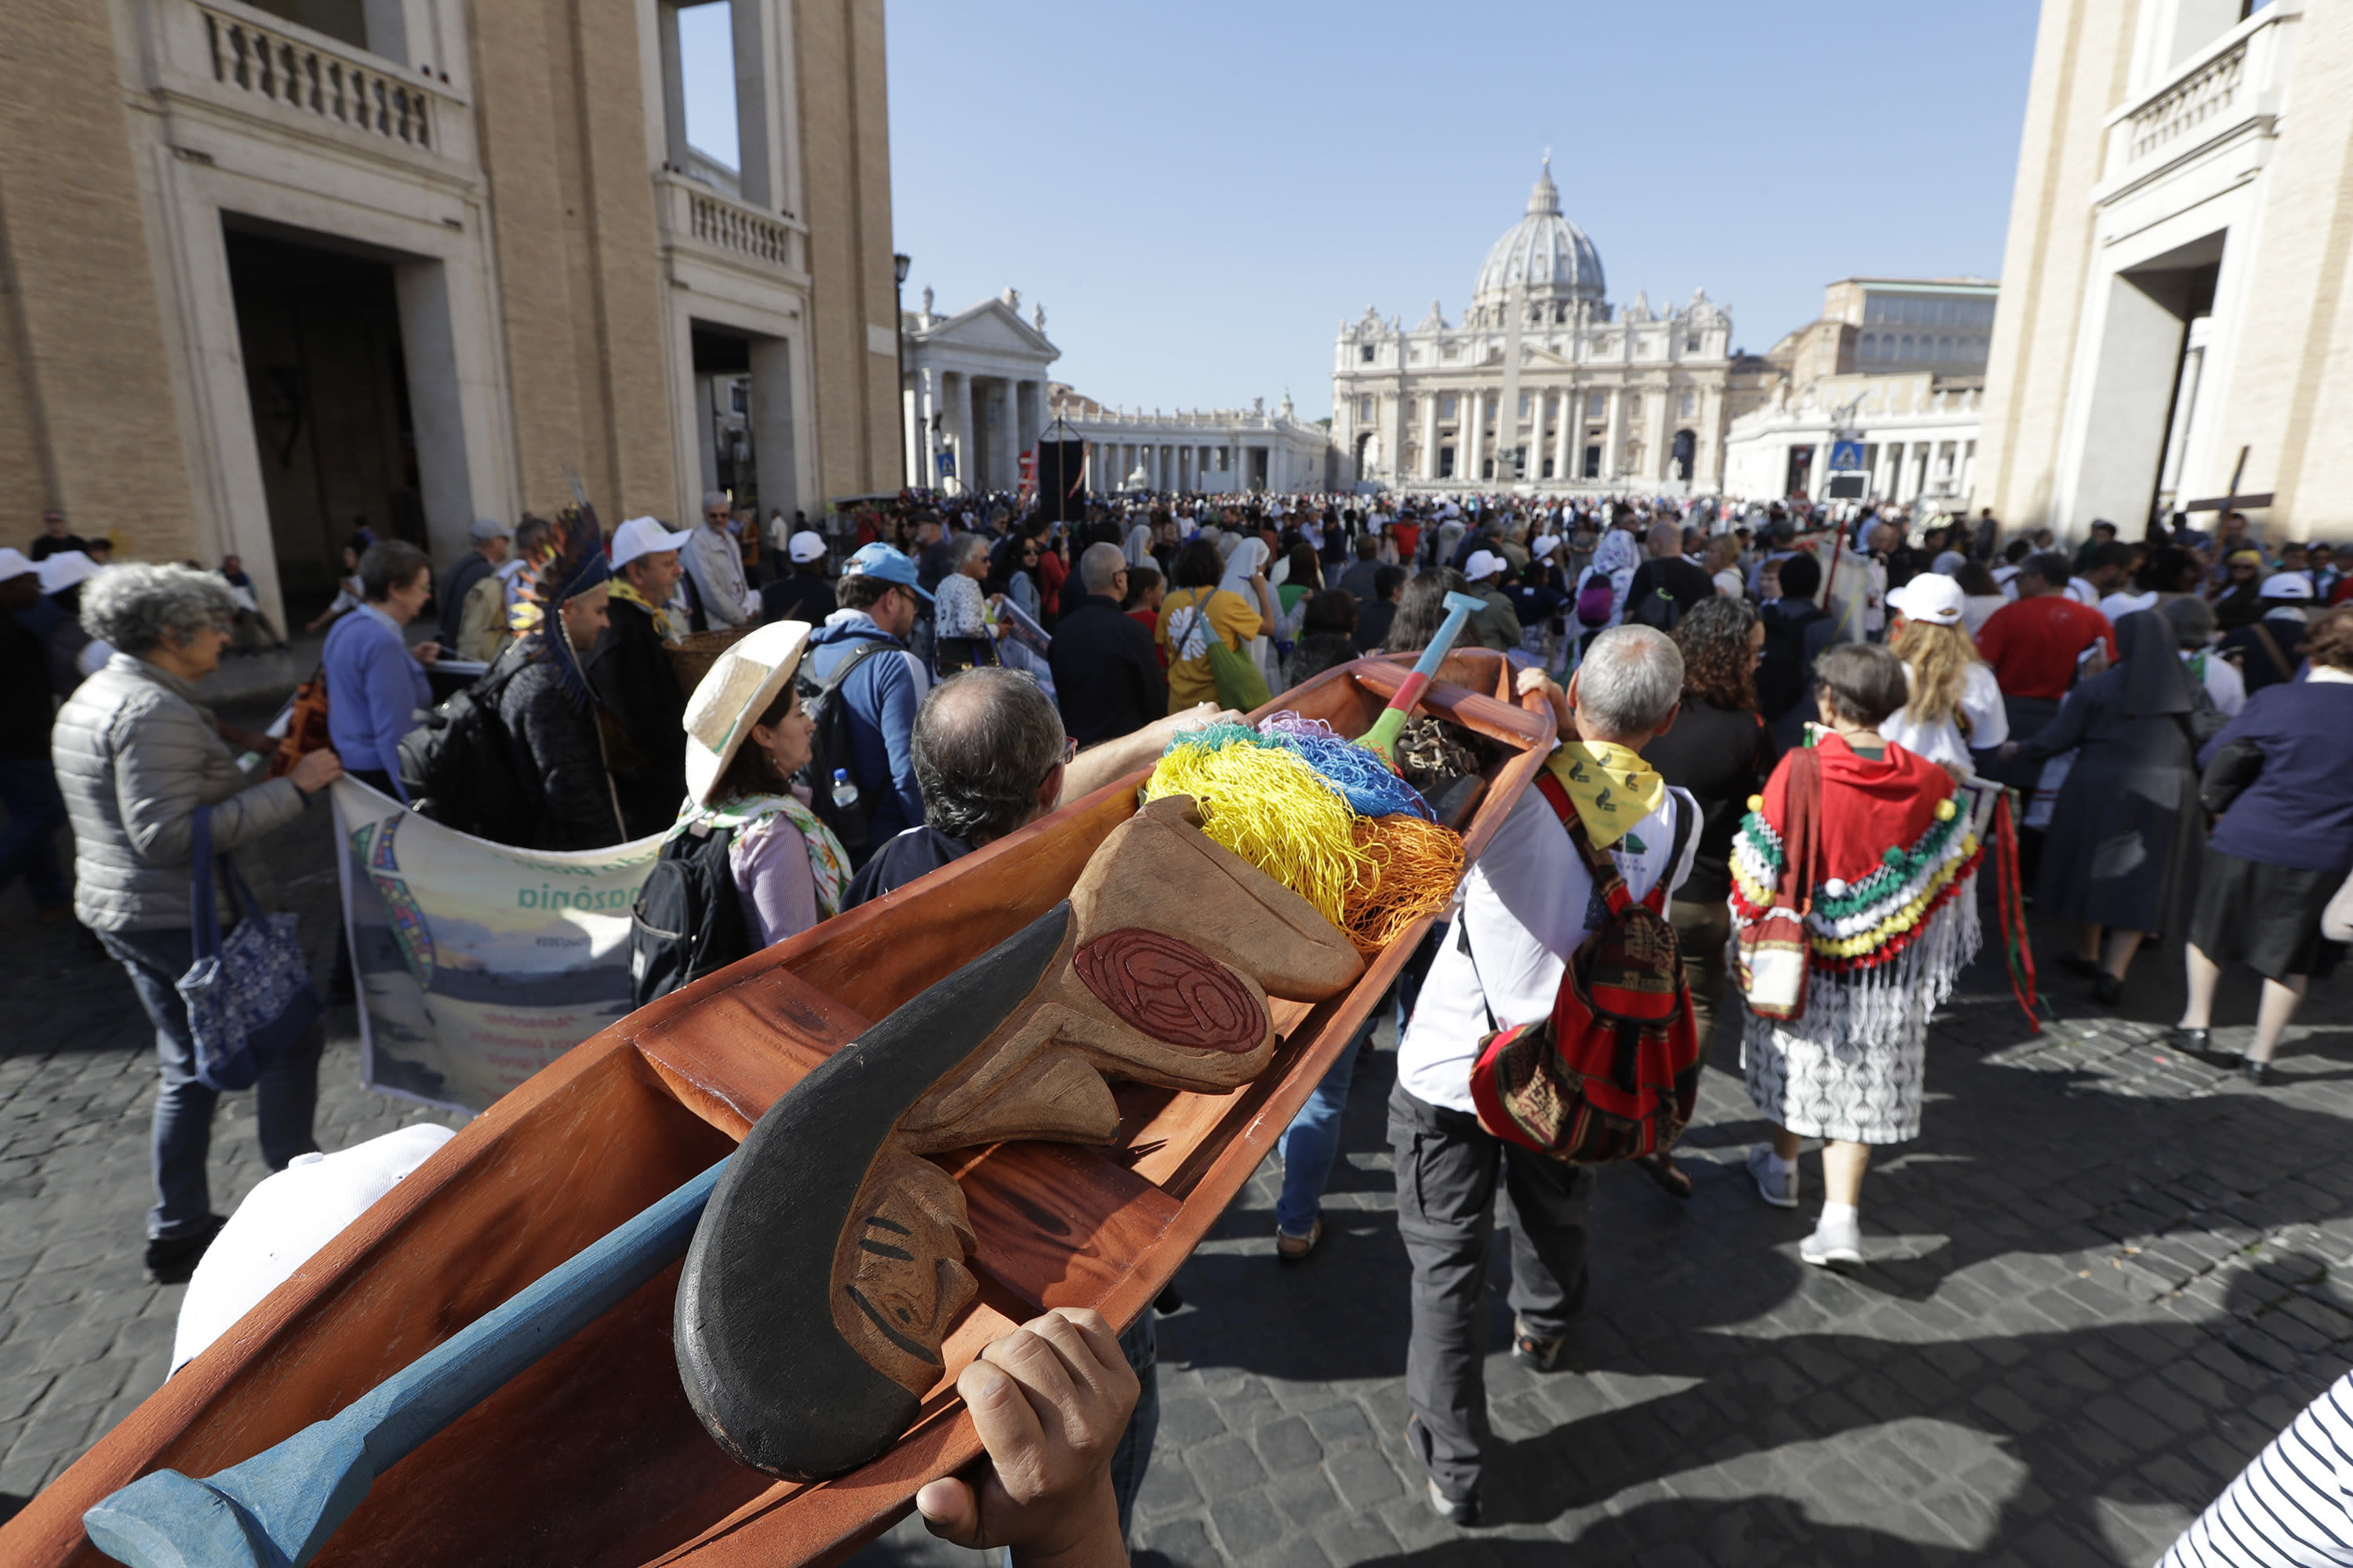 In this photo taken on Saturday, Oct. 19, 2019, members of Amazon indigenous populations walk during a Via Crucis (Way of the Cross) procession from St. Angelo Castle to the Vatican. In foreground is a wooden statue portraying a naked pregnant woman. Pope Francis' meeting on the Amazon is wrapping up after three weeks of debate over married priests, the environment _ and the destruction of indigenous statues that underscored the willingness of conservatives to violently vent their opposition to the pope. (AP Photo/Andrew Medichini)